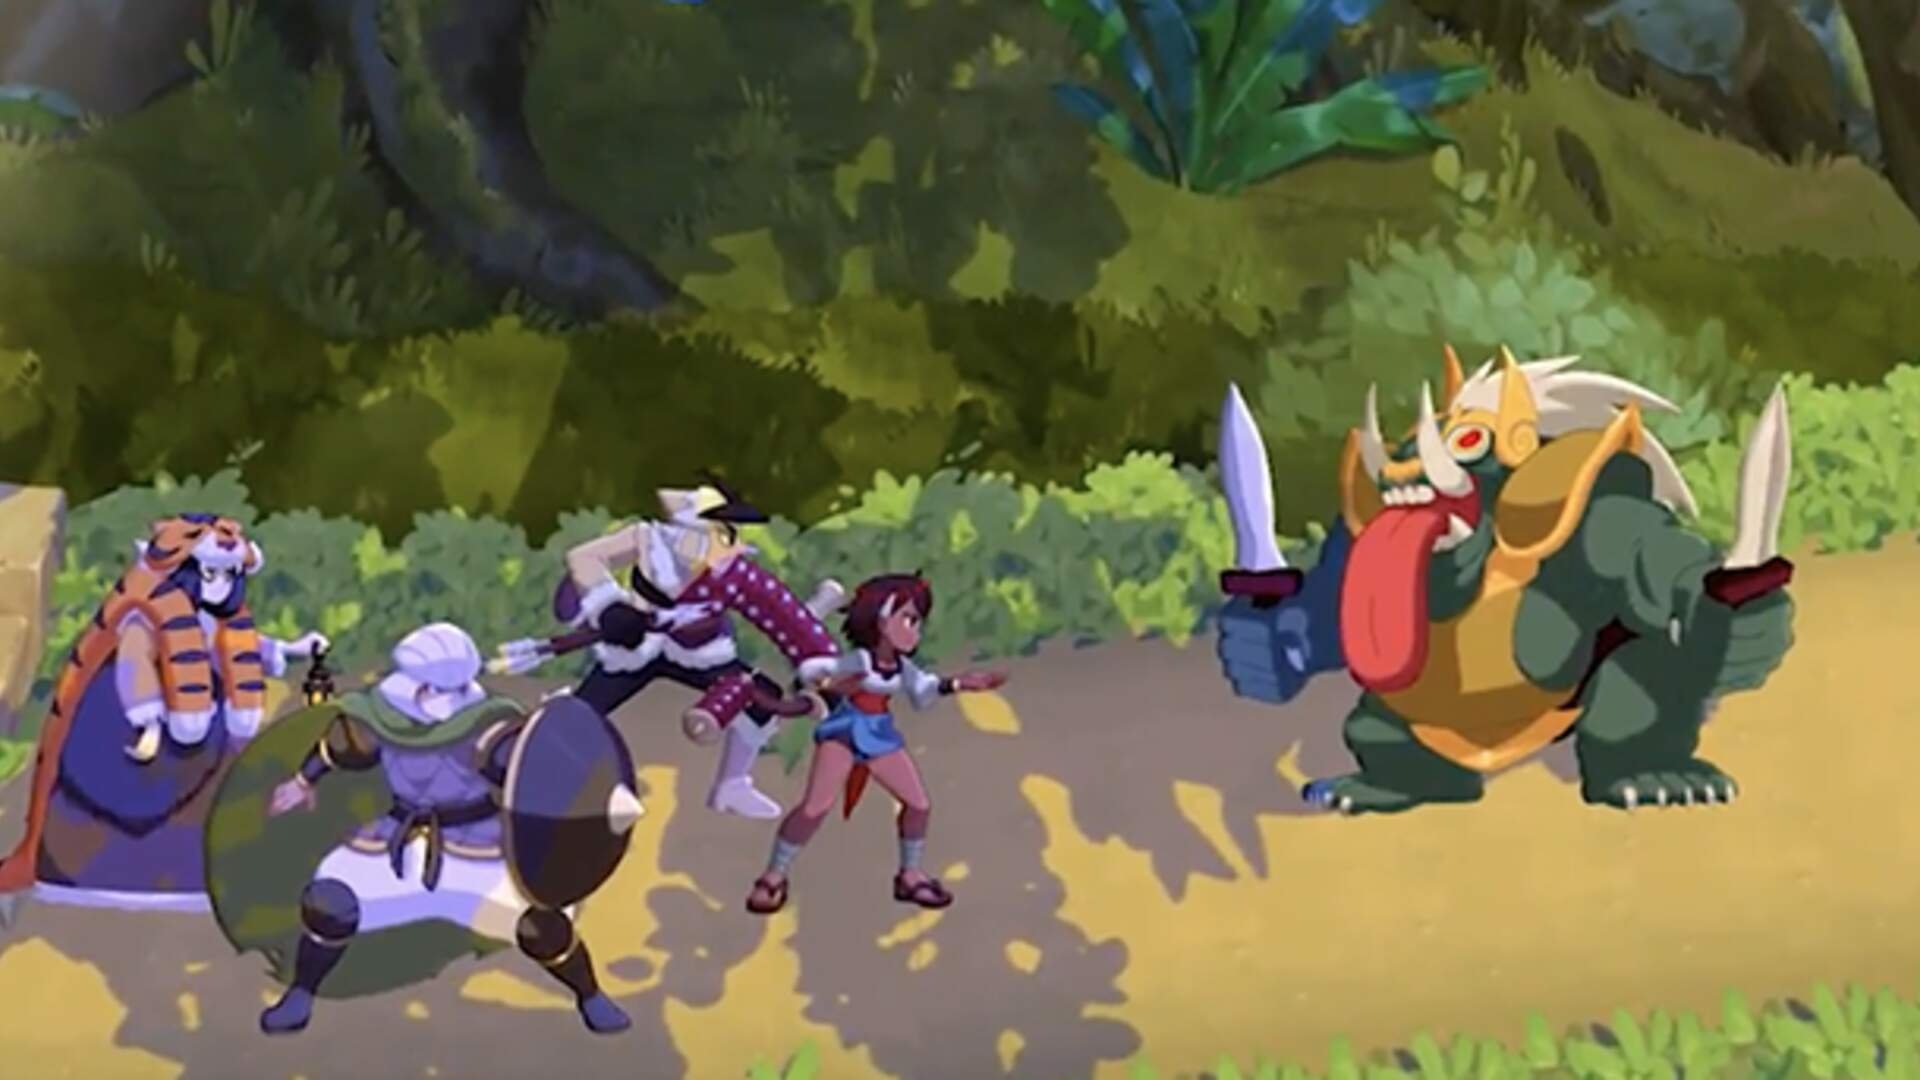 Skullgirls' Developers' Upcoming Game Indivisible Is Coming to Switch in 2018